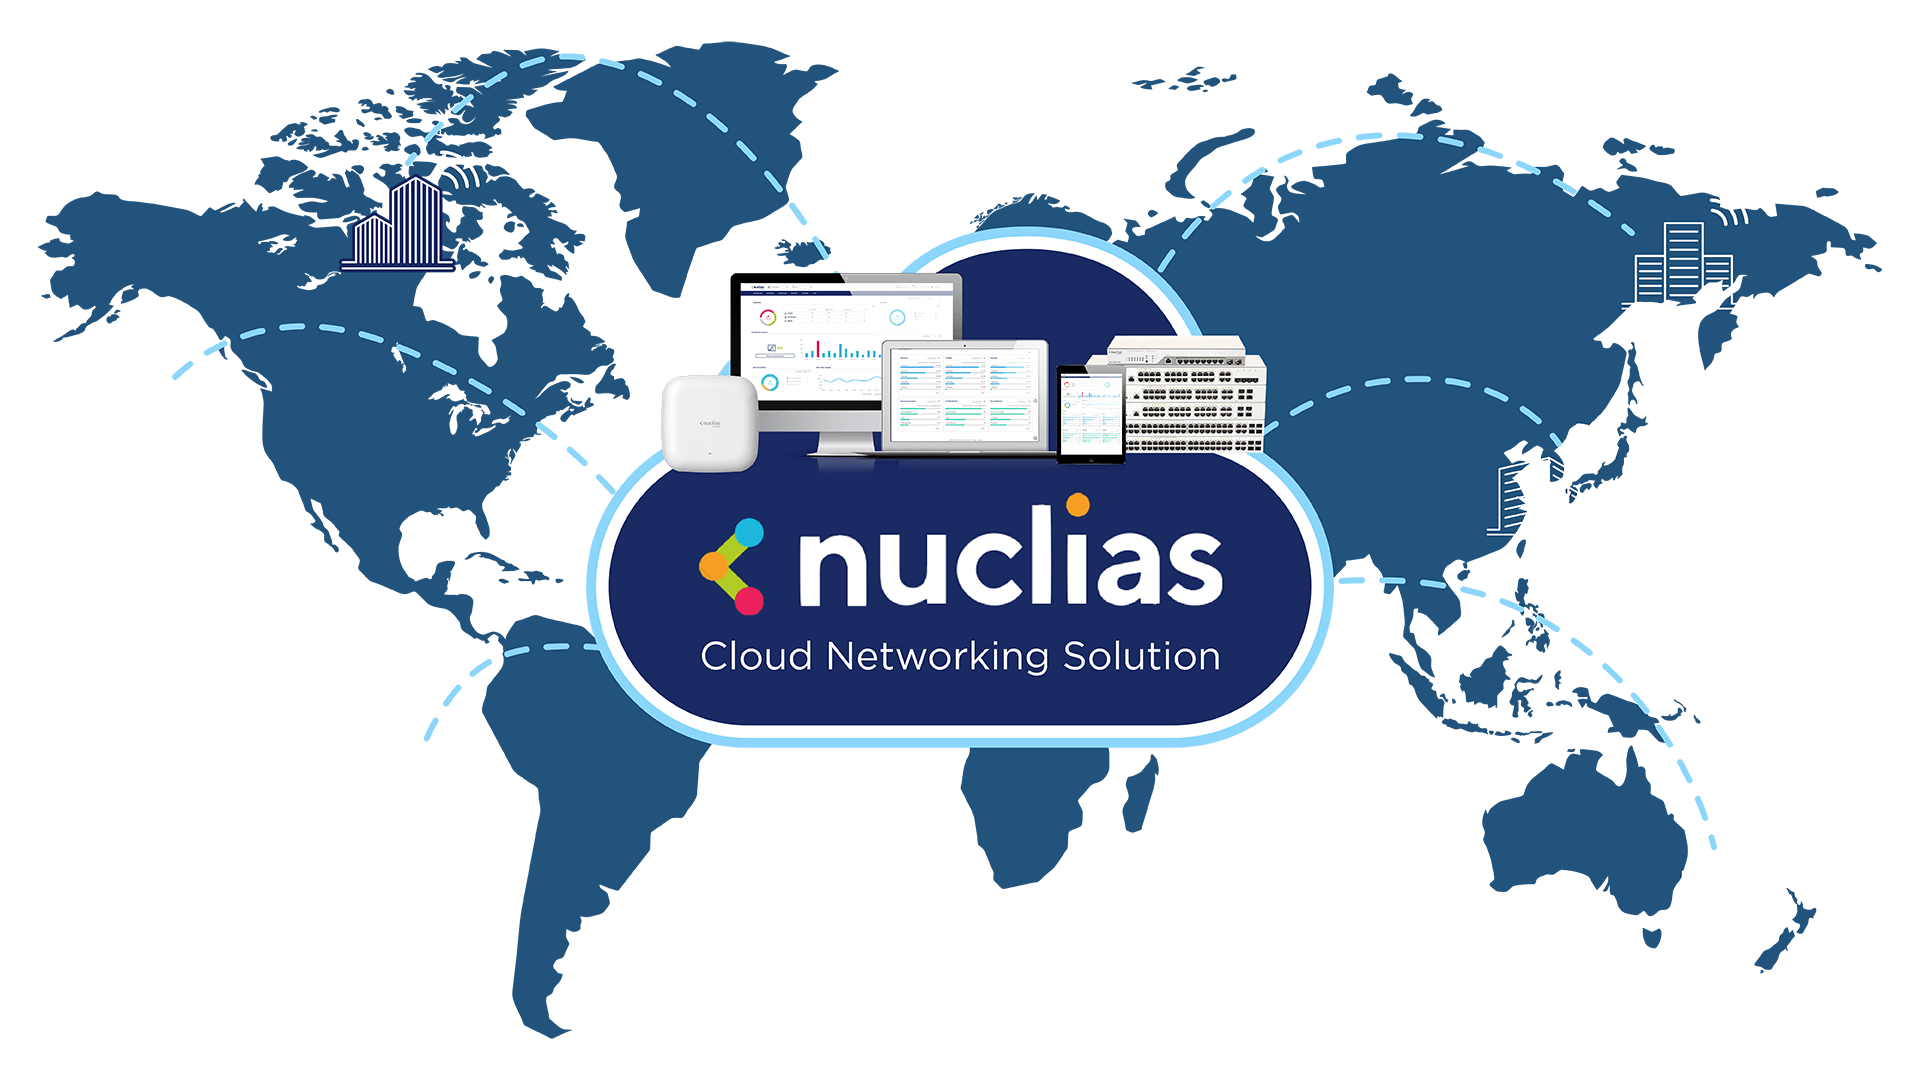 Nuclias Cloud Networking Solution